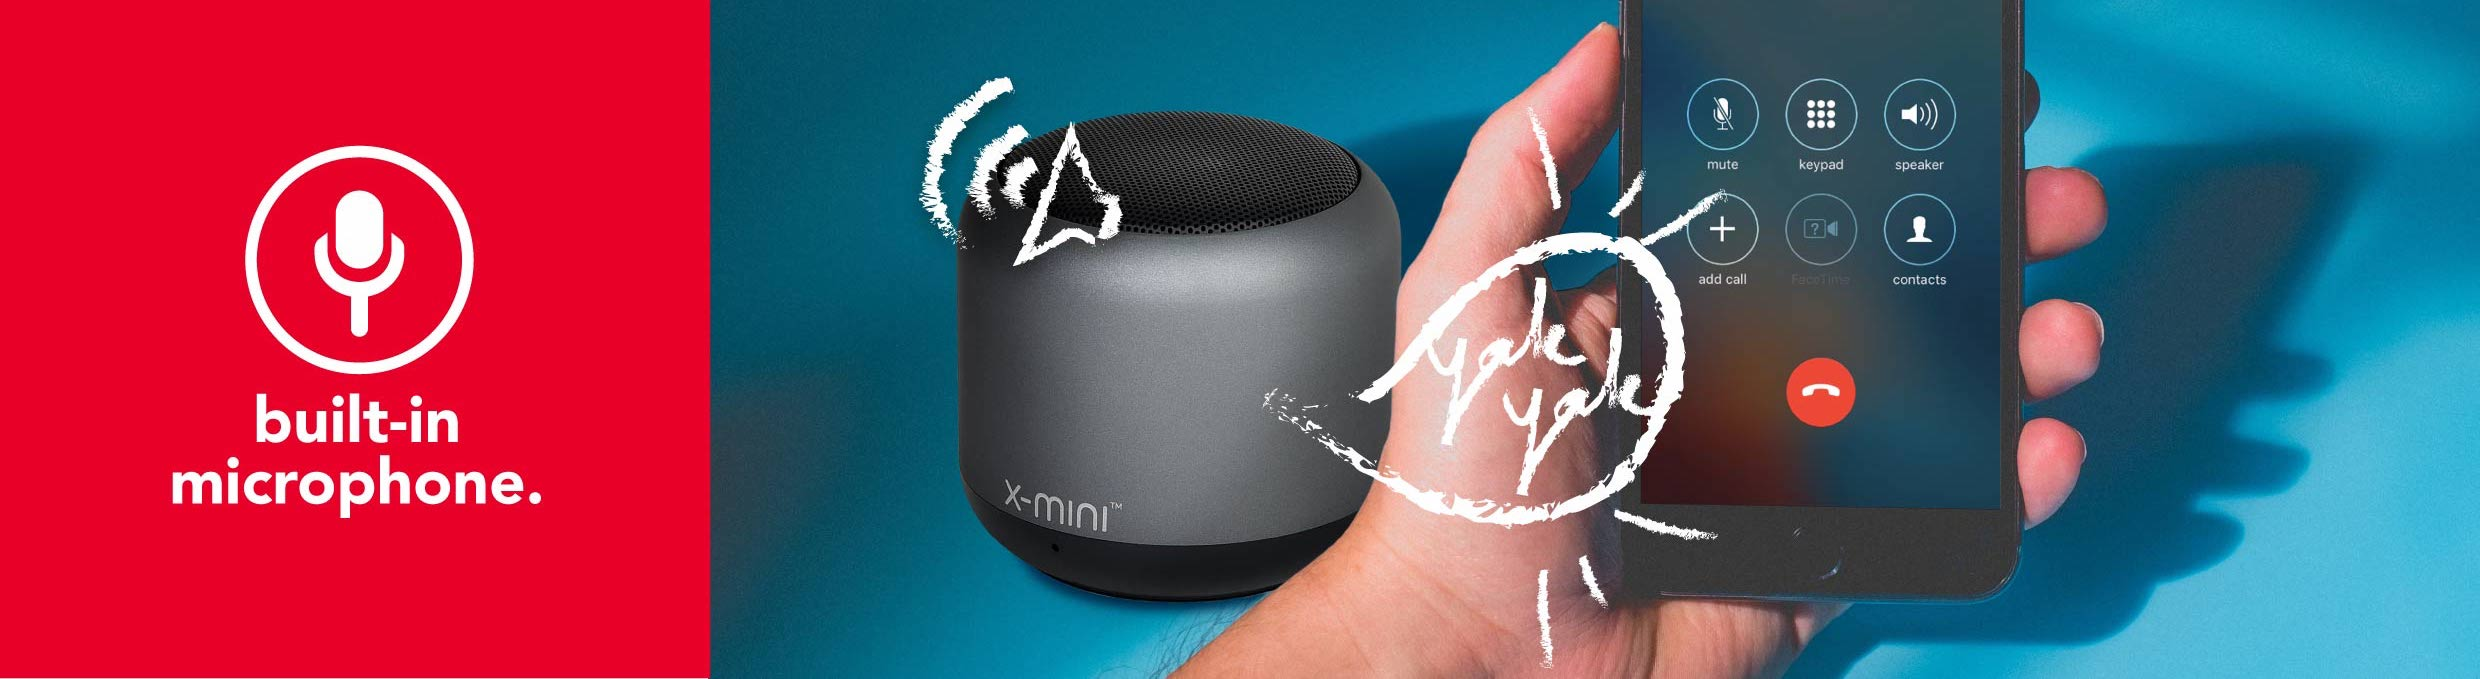 X-mini-Kai-X2-True-Wireless-Portable-Bluetooth-Speaker-Built-In-Microphone